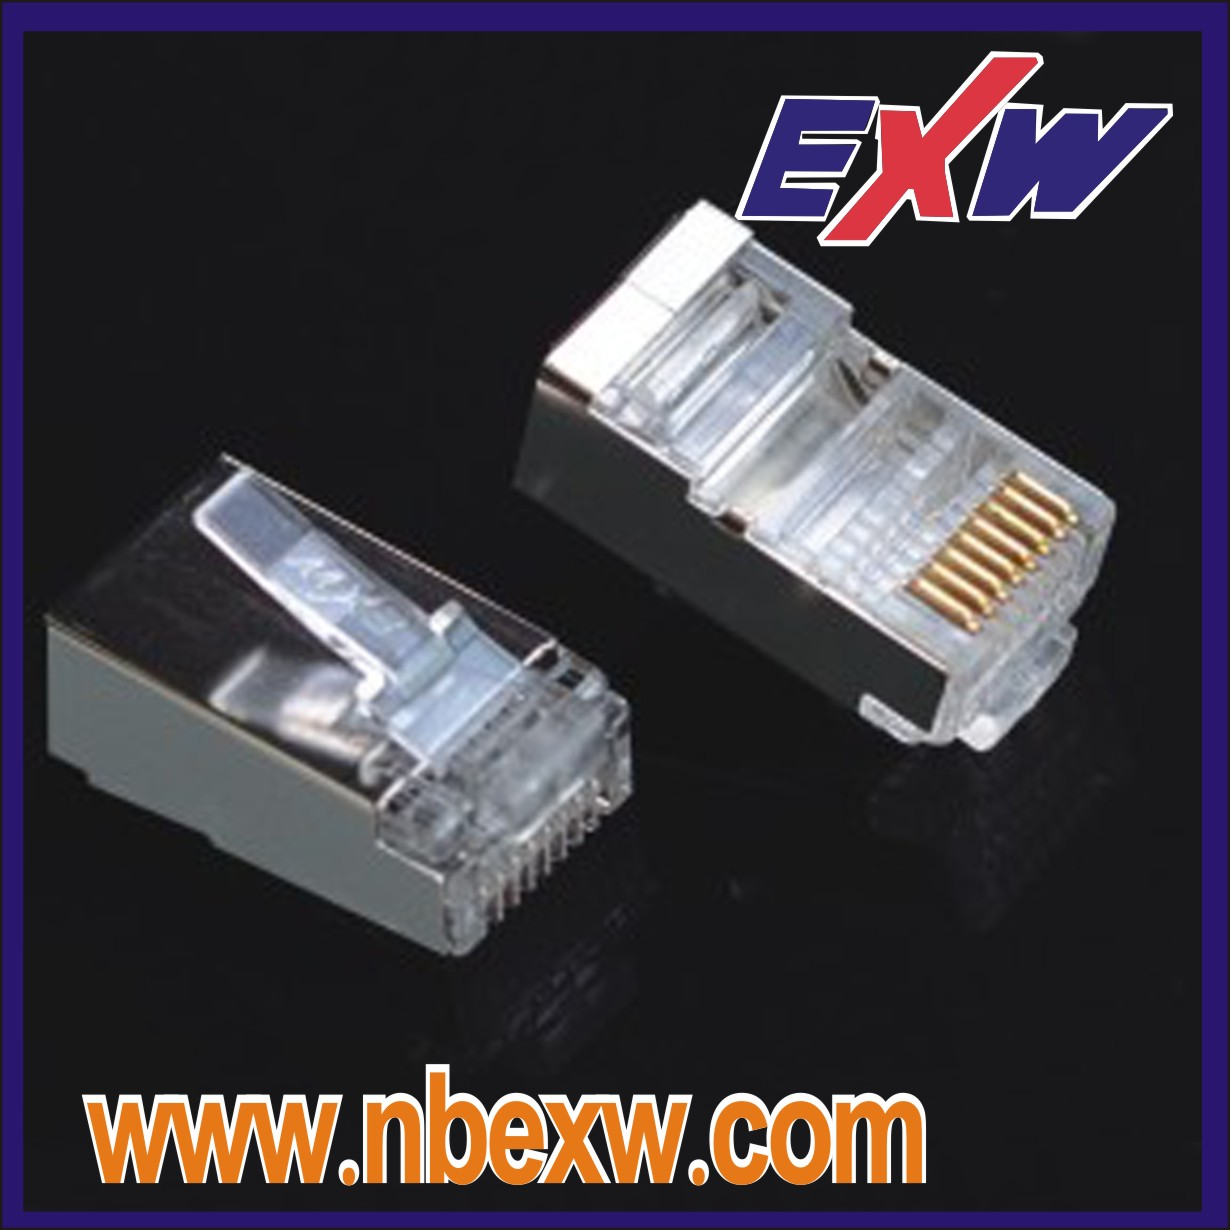 Metal RJ45 Connector for Cat5e